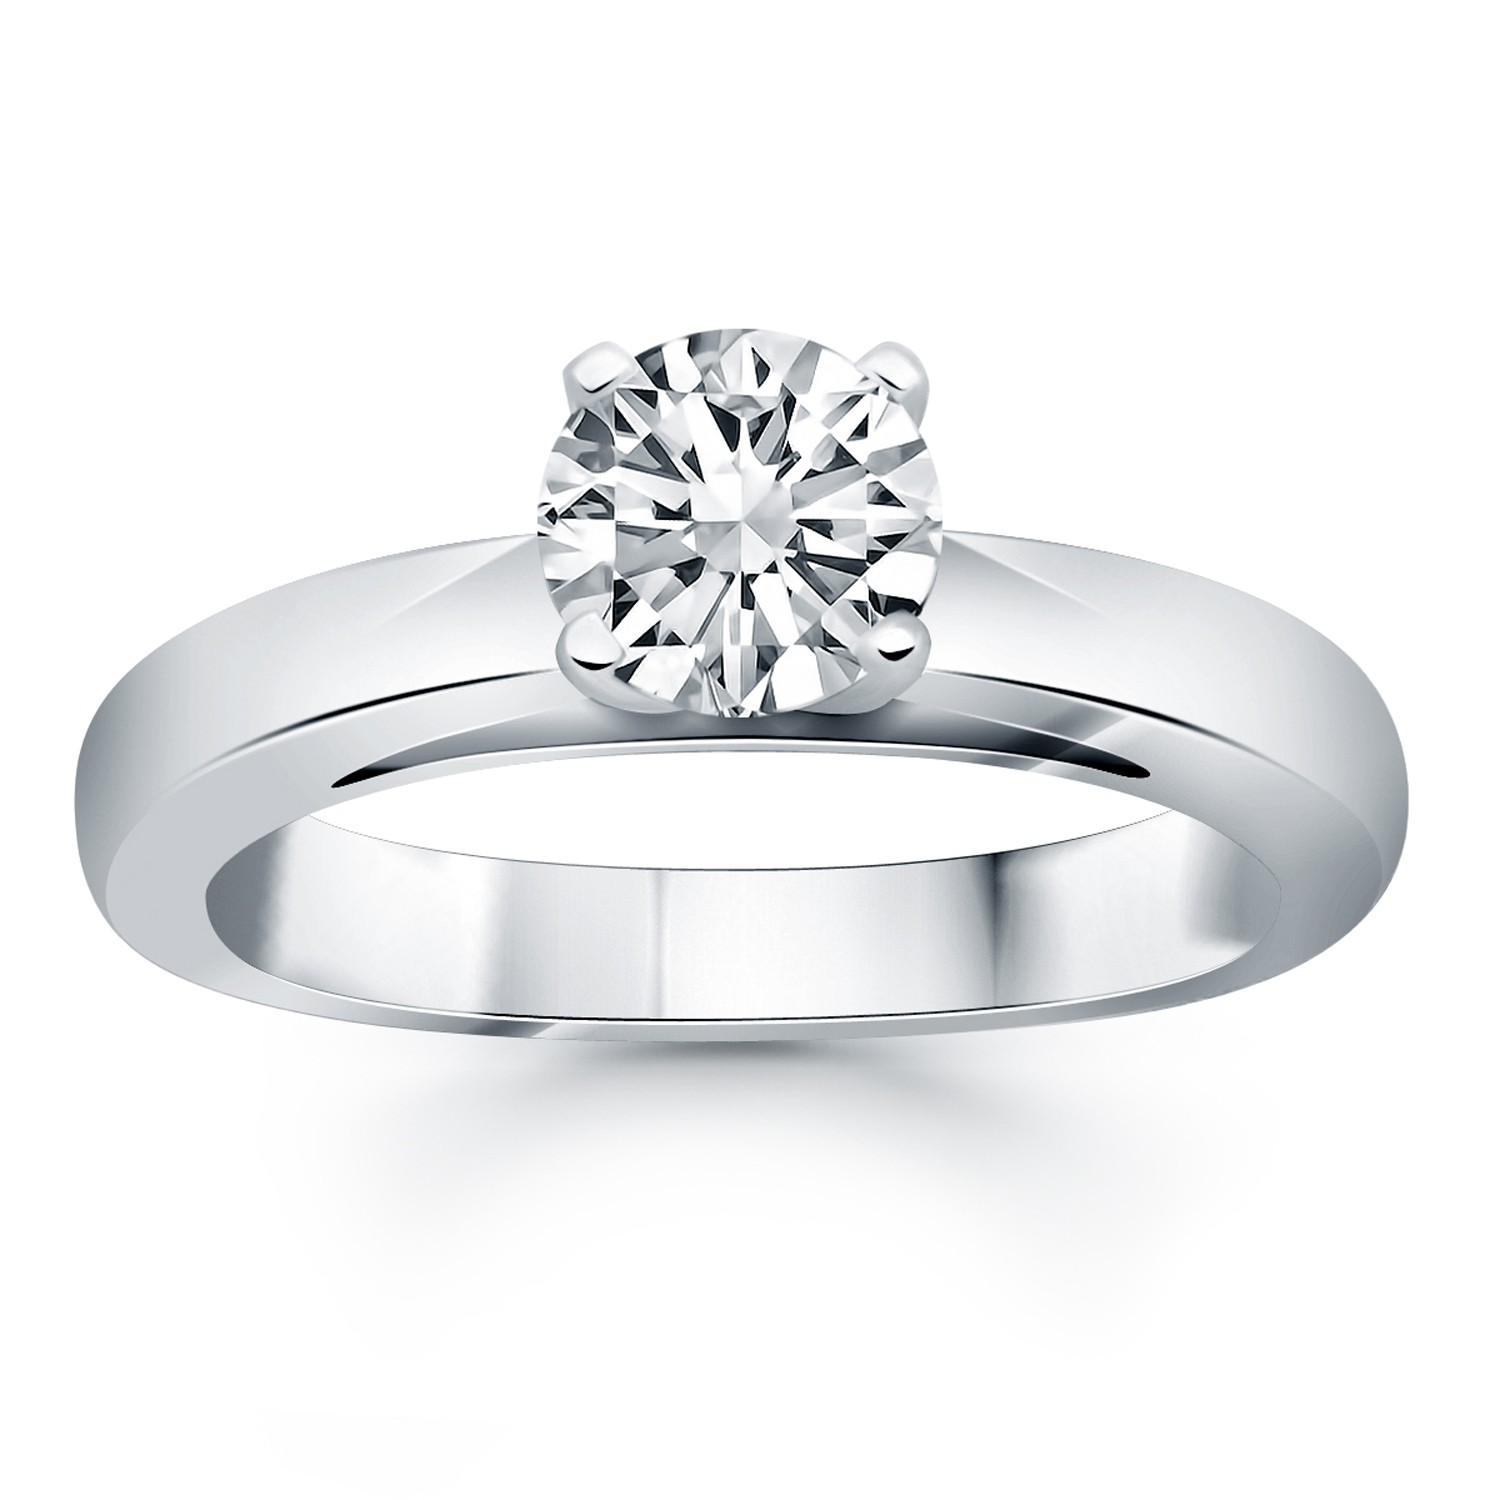 engagement ring diamond solitaire b thick w r in wide princess white cut gold rings product band